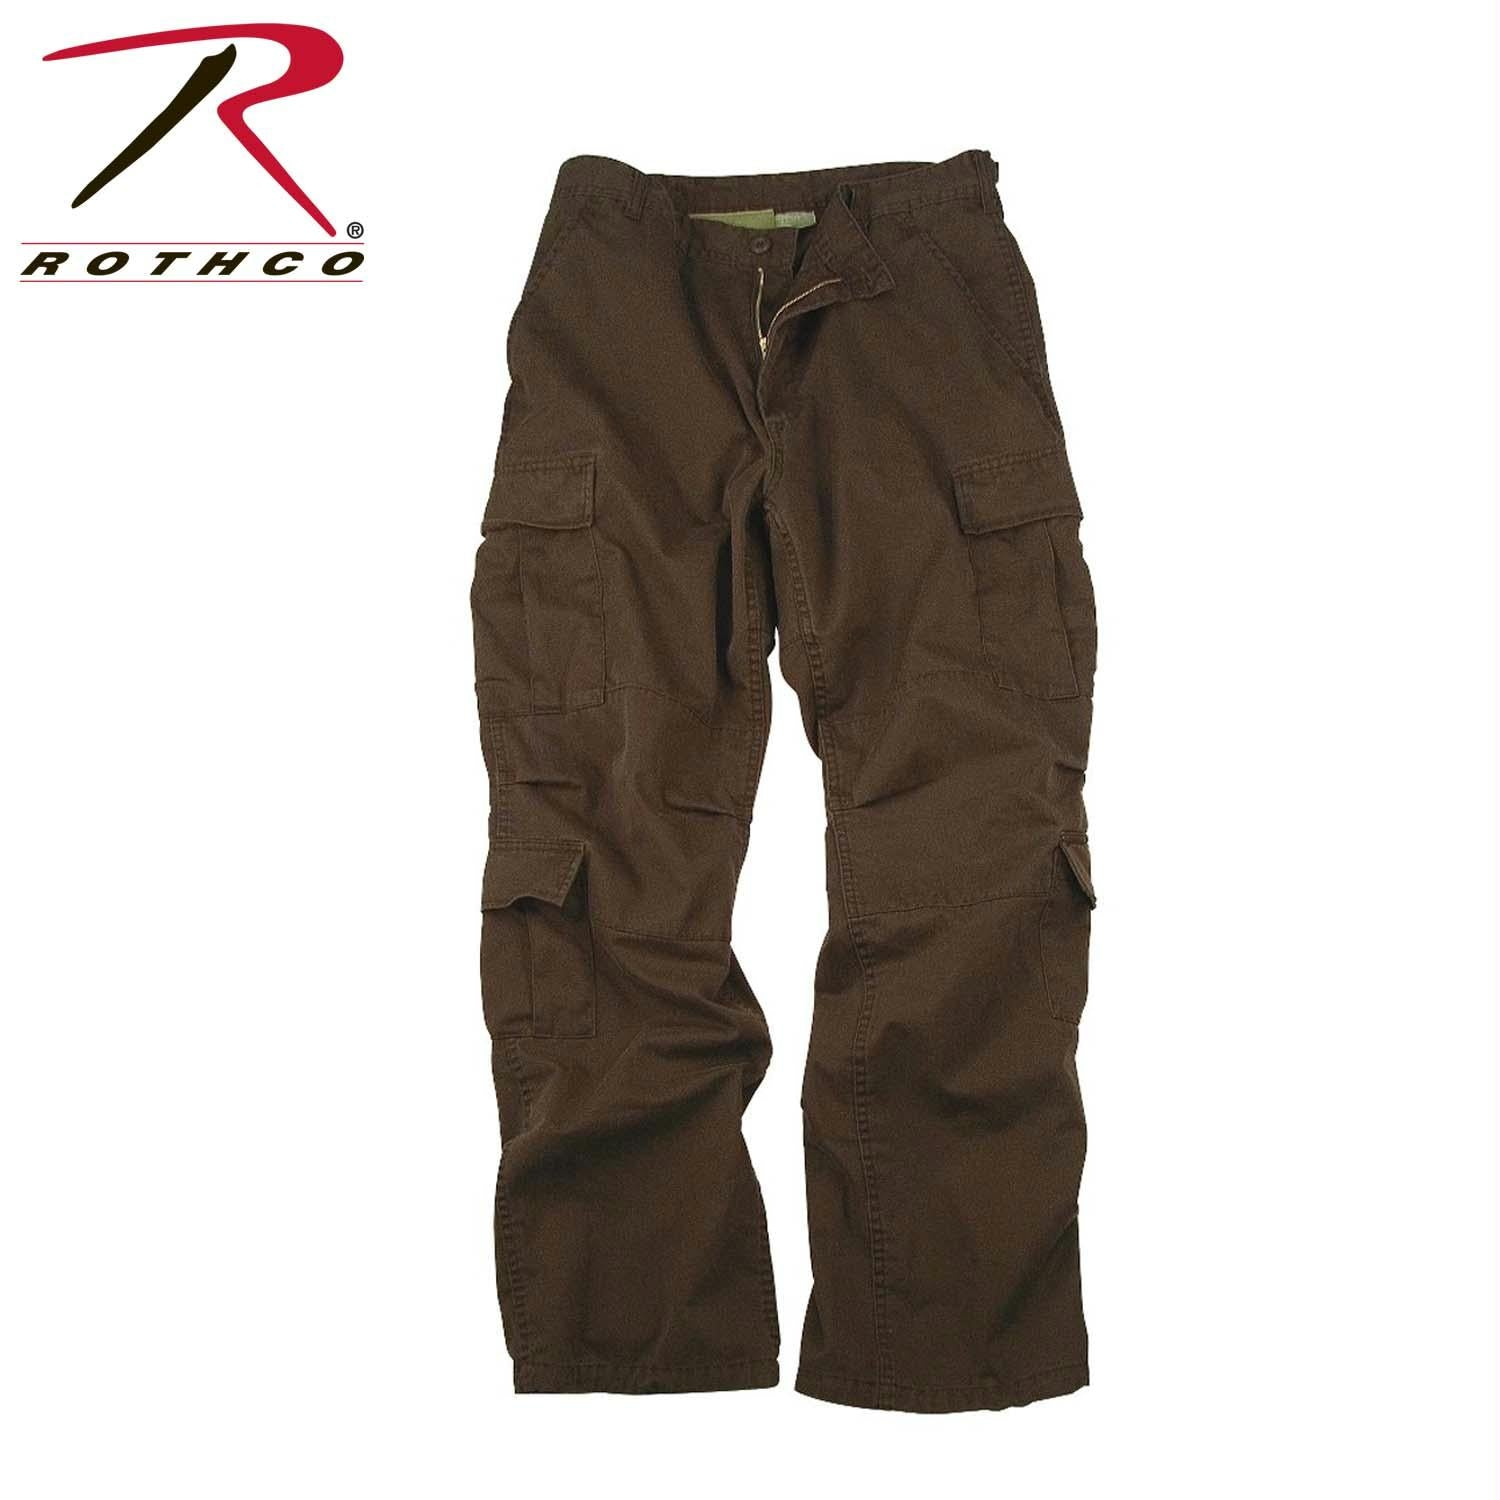 Rothco Vintage Paratrooper Fatigue Pants - Brown / XL